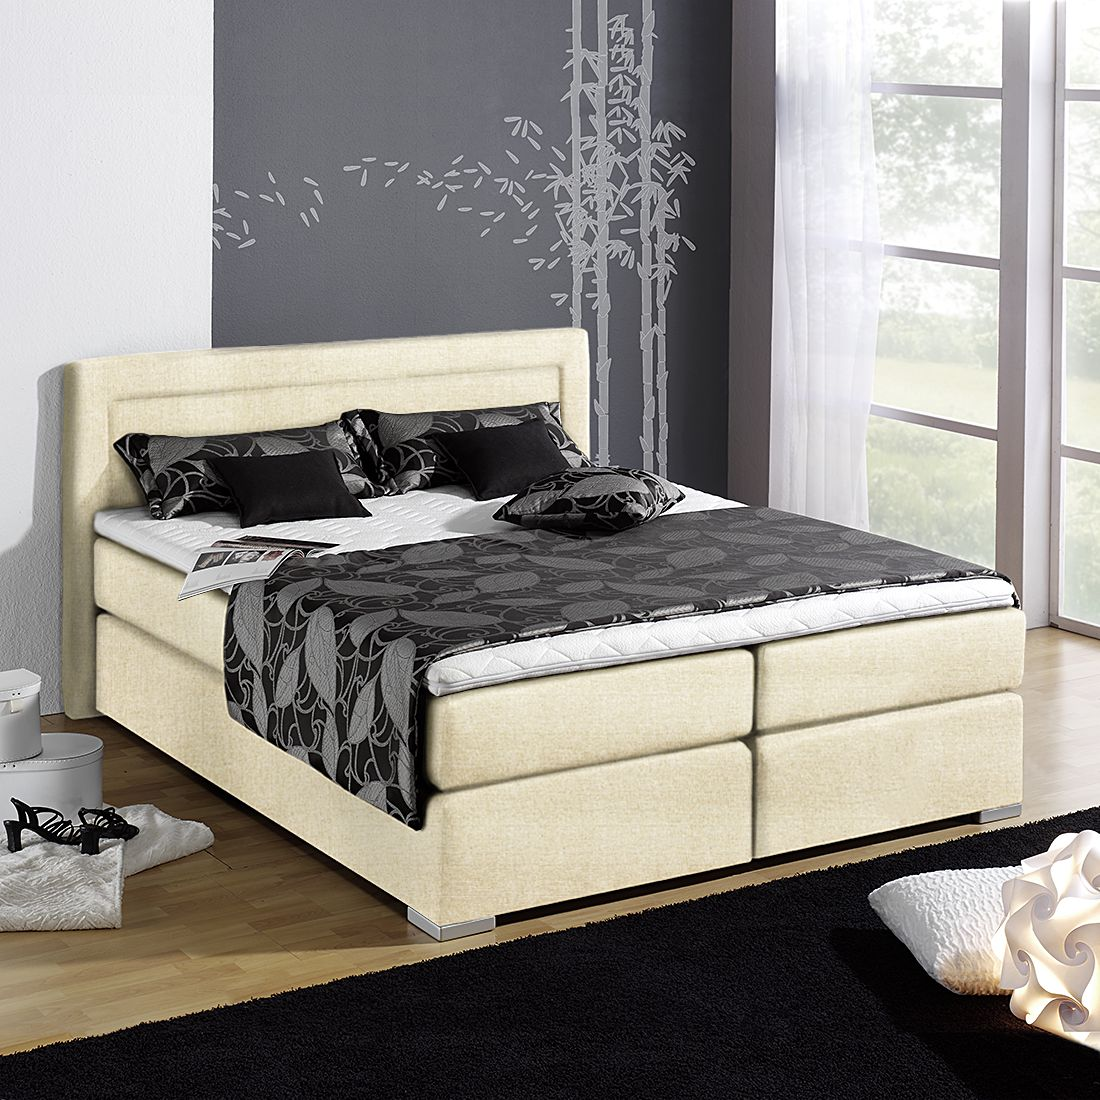 boxspringbett sandor inklusive topper strukturstoff 140 x 200cm h3 ab 80 kg. Black Bedroom Furniture Sets. Home Design Ideas